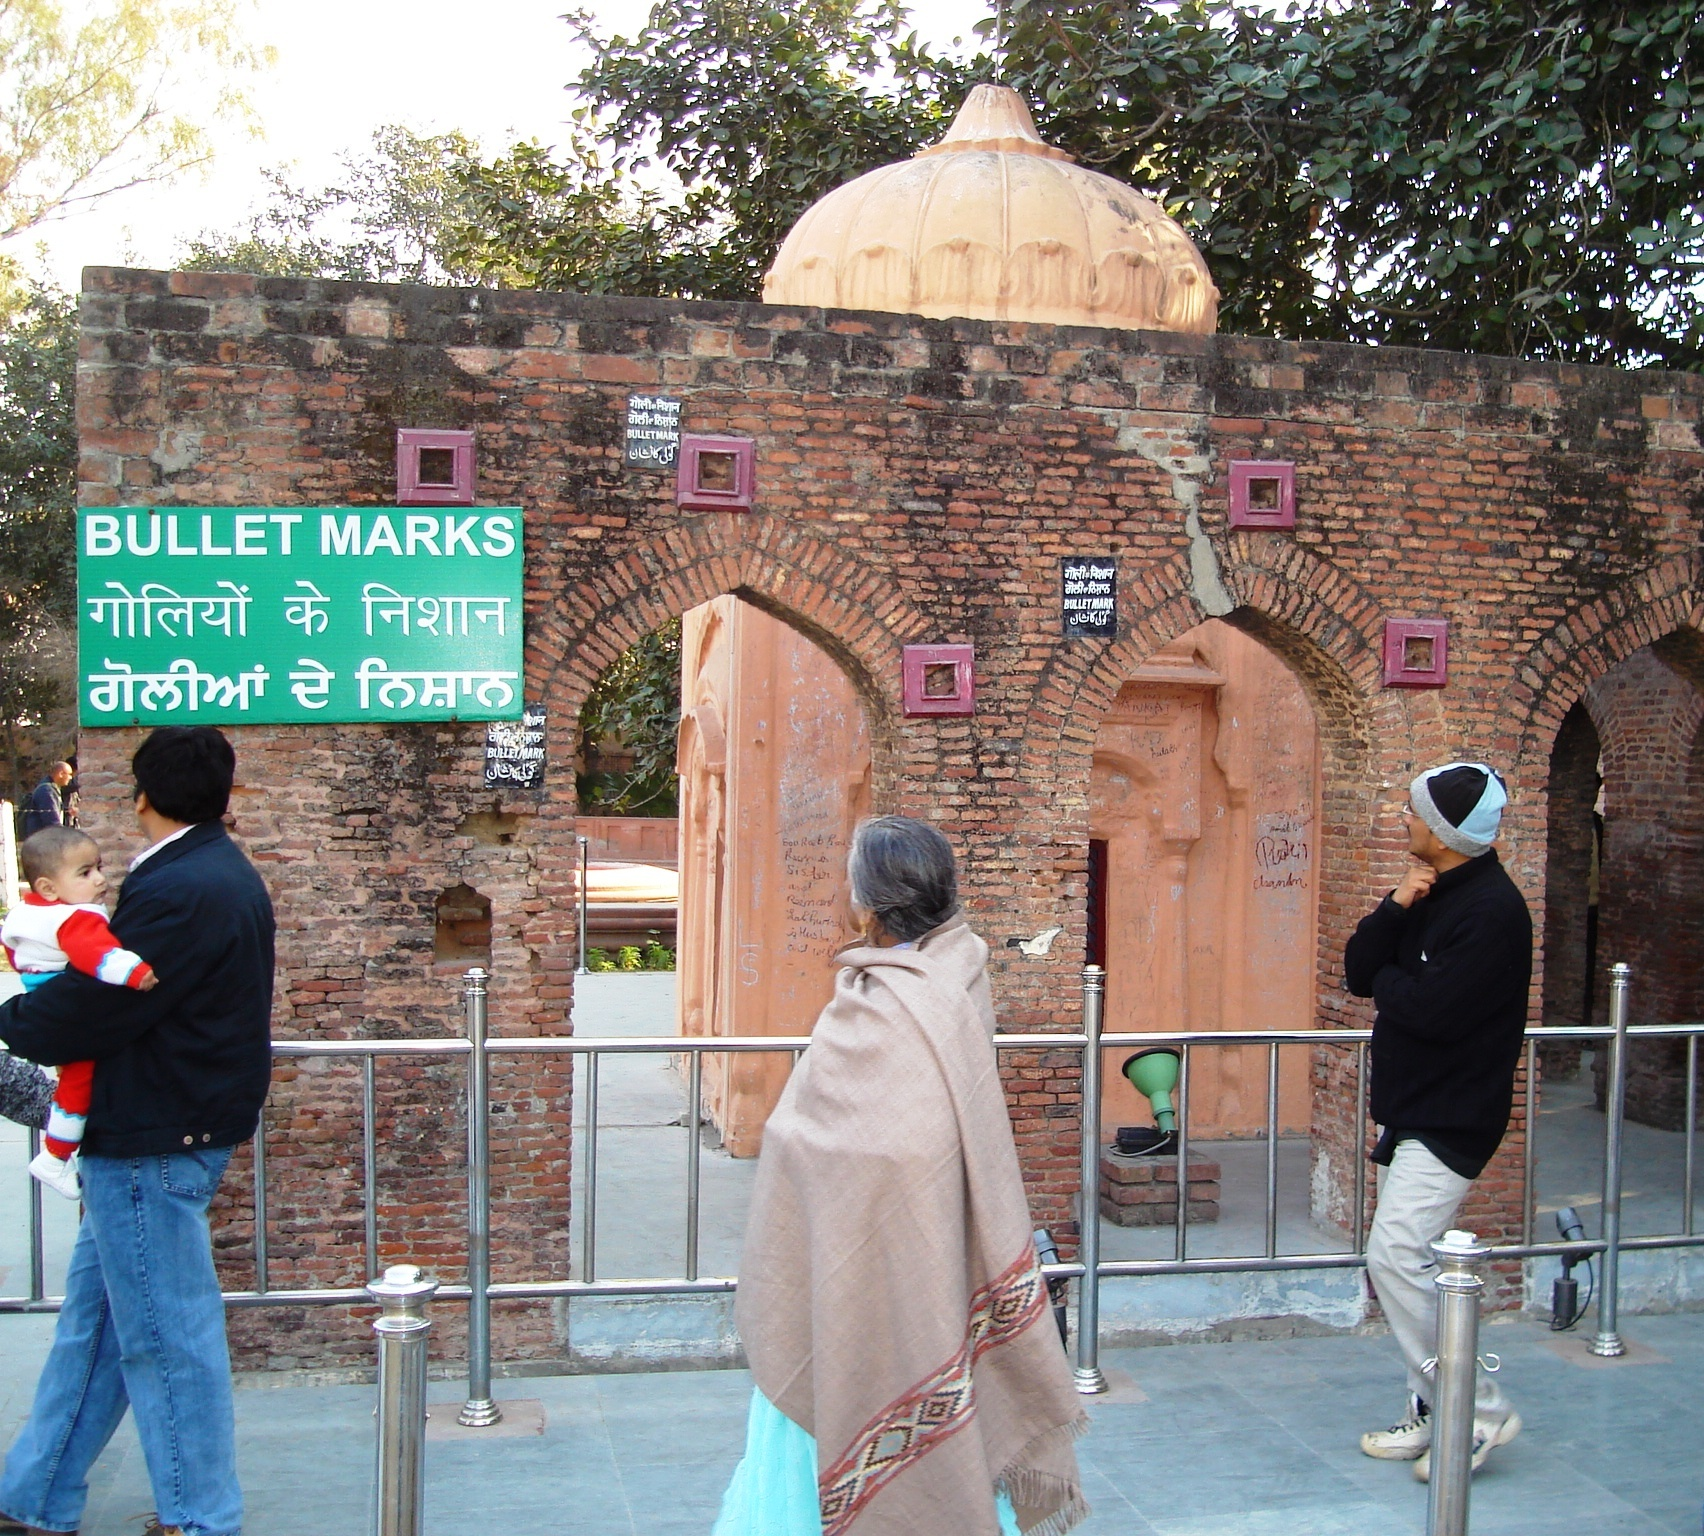 Bullet marks preserved at the site of the Jallianwalla Bagh Massacre.